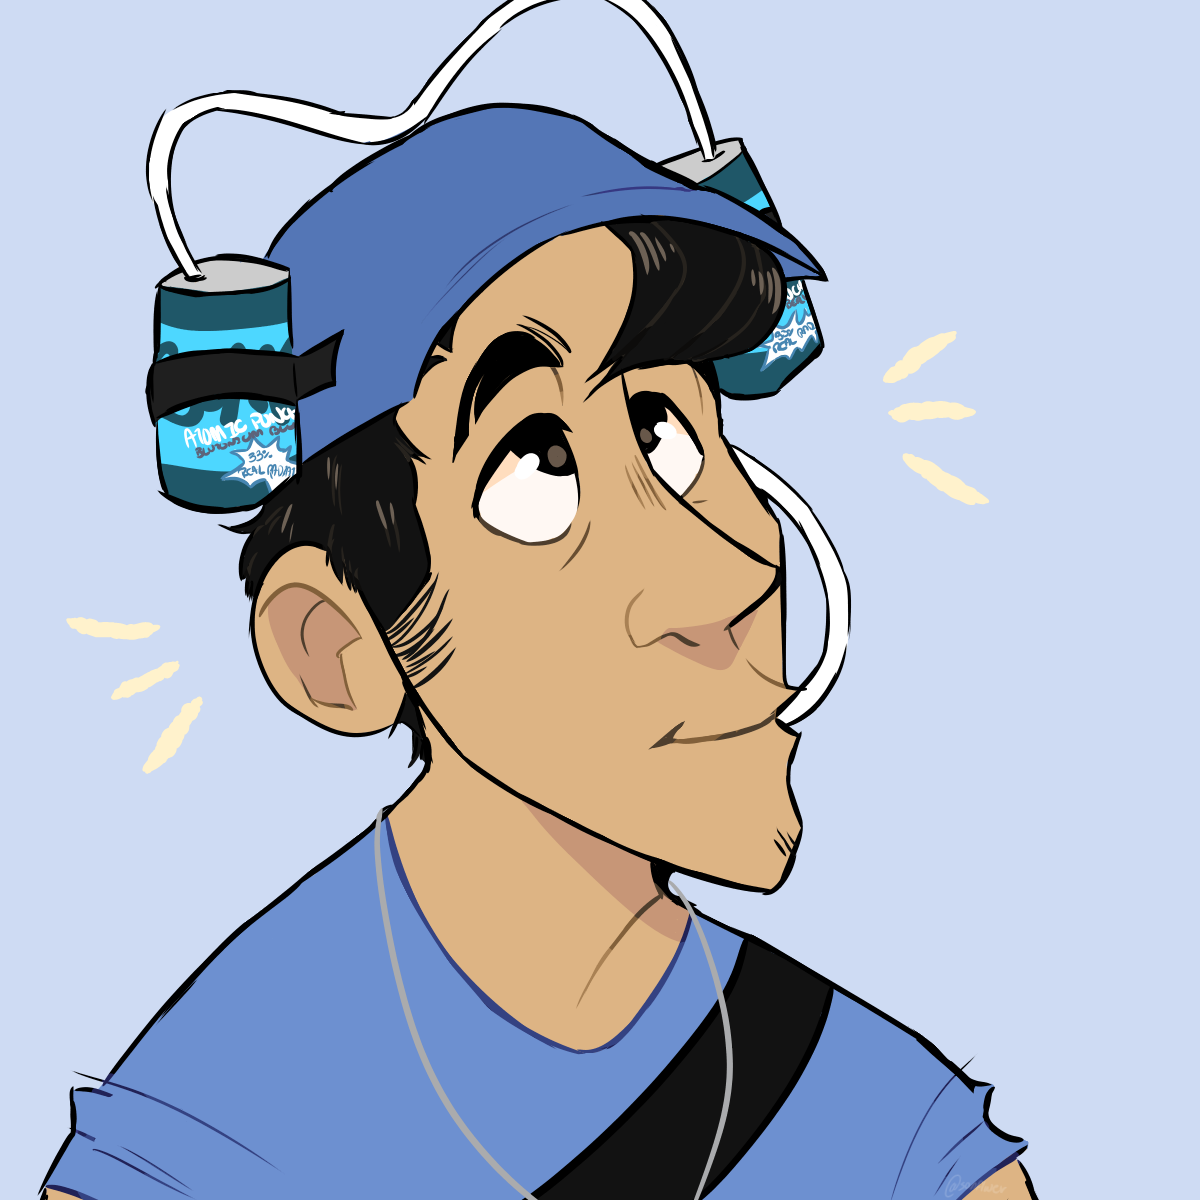 I Drew Myself As Scout With A Bonk Helm D Games Teamfortress2 Steam Tf2 Steamnewrelease Gaming Valve Drawings Scout Team Fortress